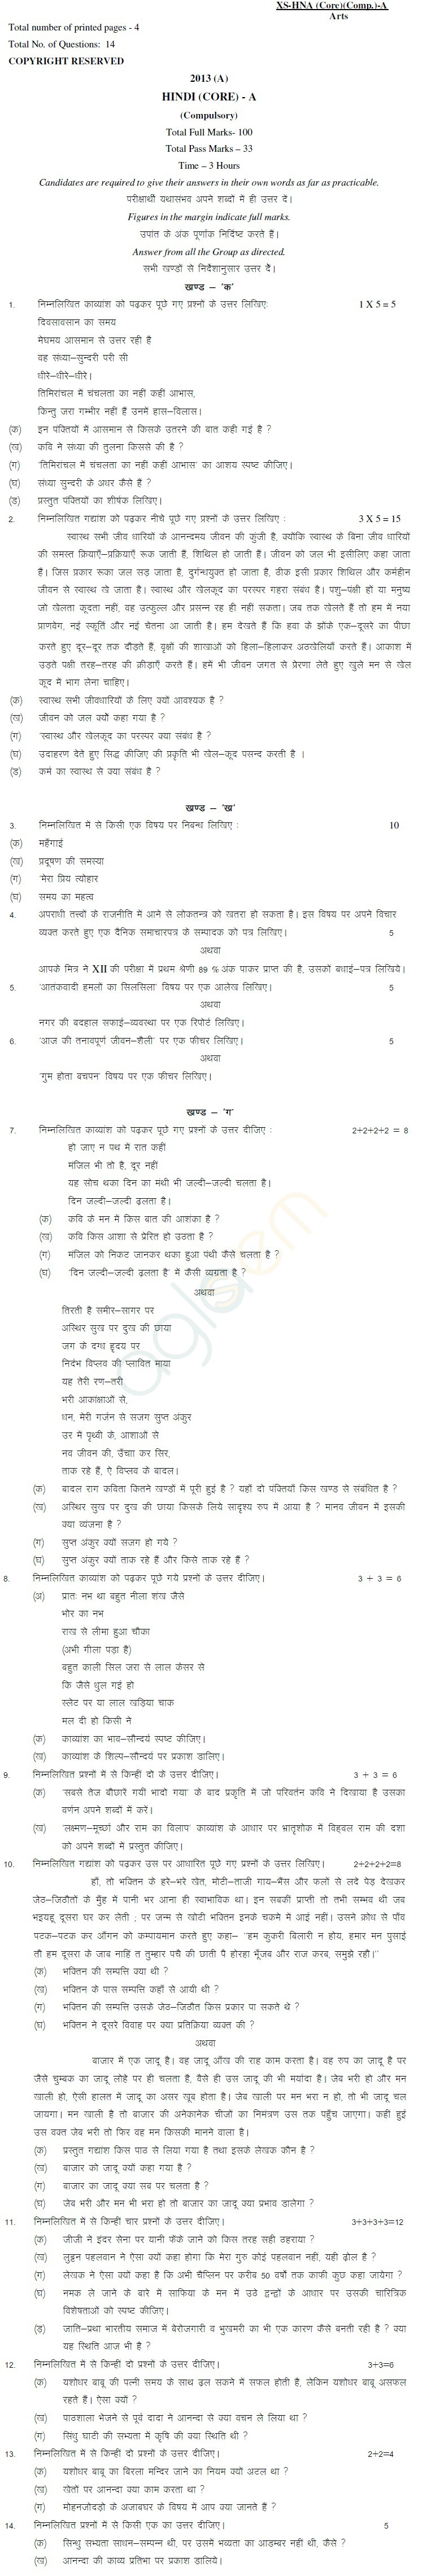 Jharkhand Board Class XII Sample Papers – HINDI CORE